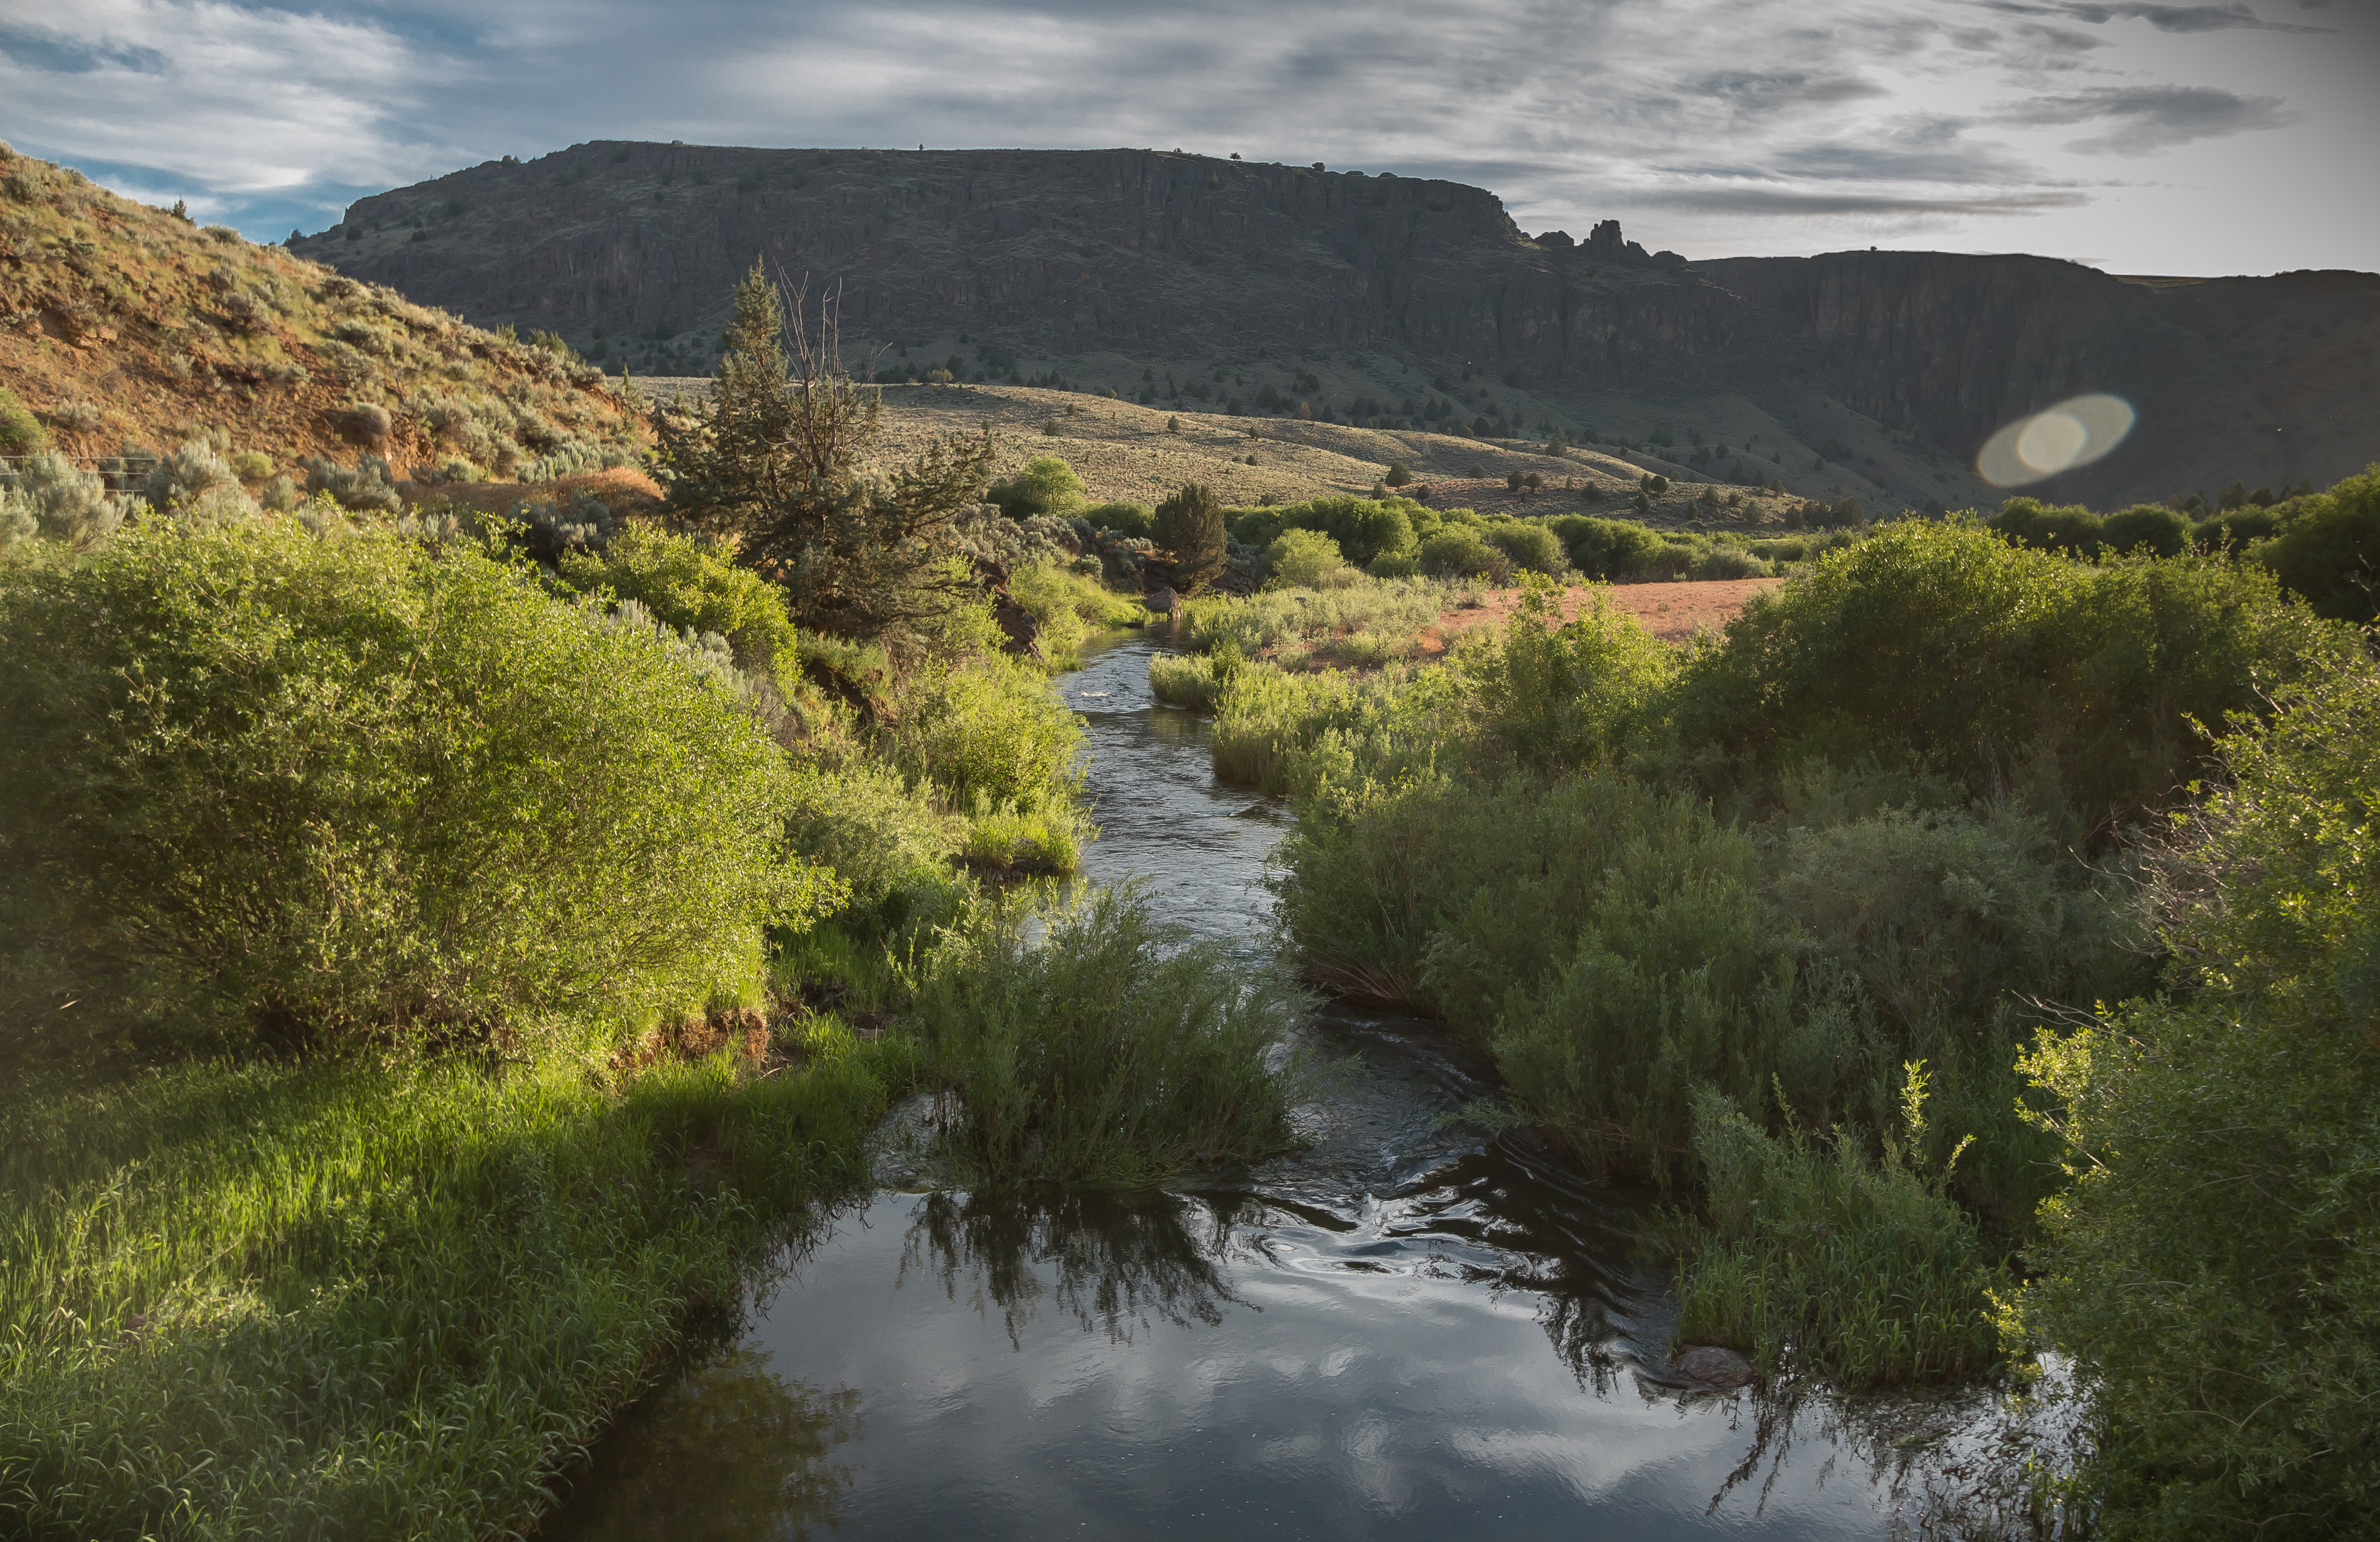 the main Owyhee Canyon. Other species known to live in the area include cougar, pronghorn antelope, and white-tailed jackrabbit. The abundance of small